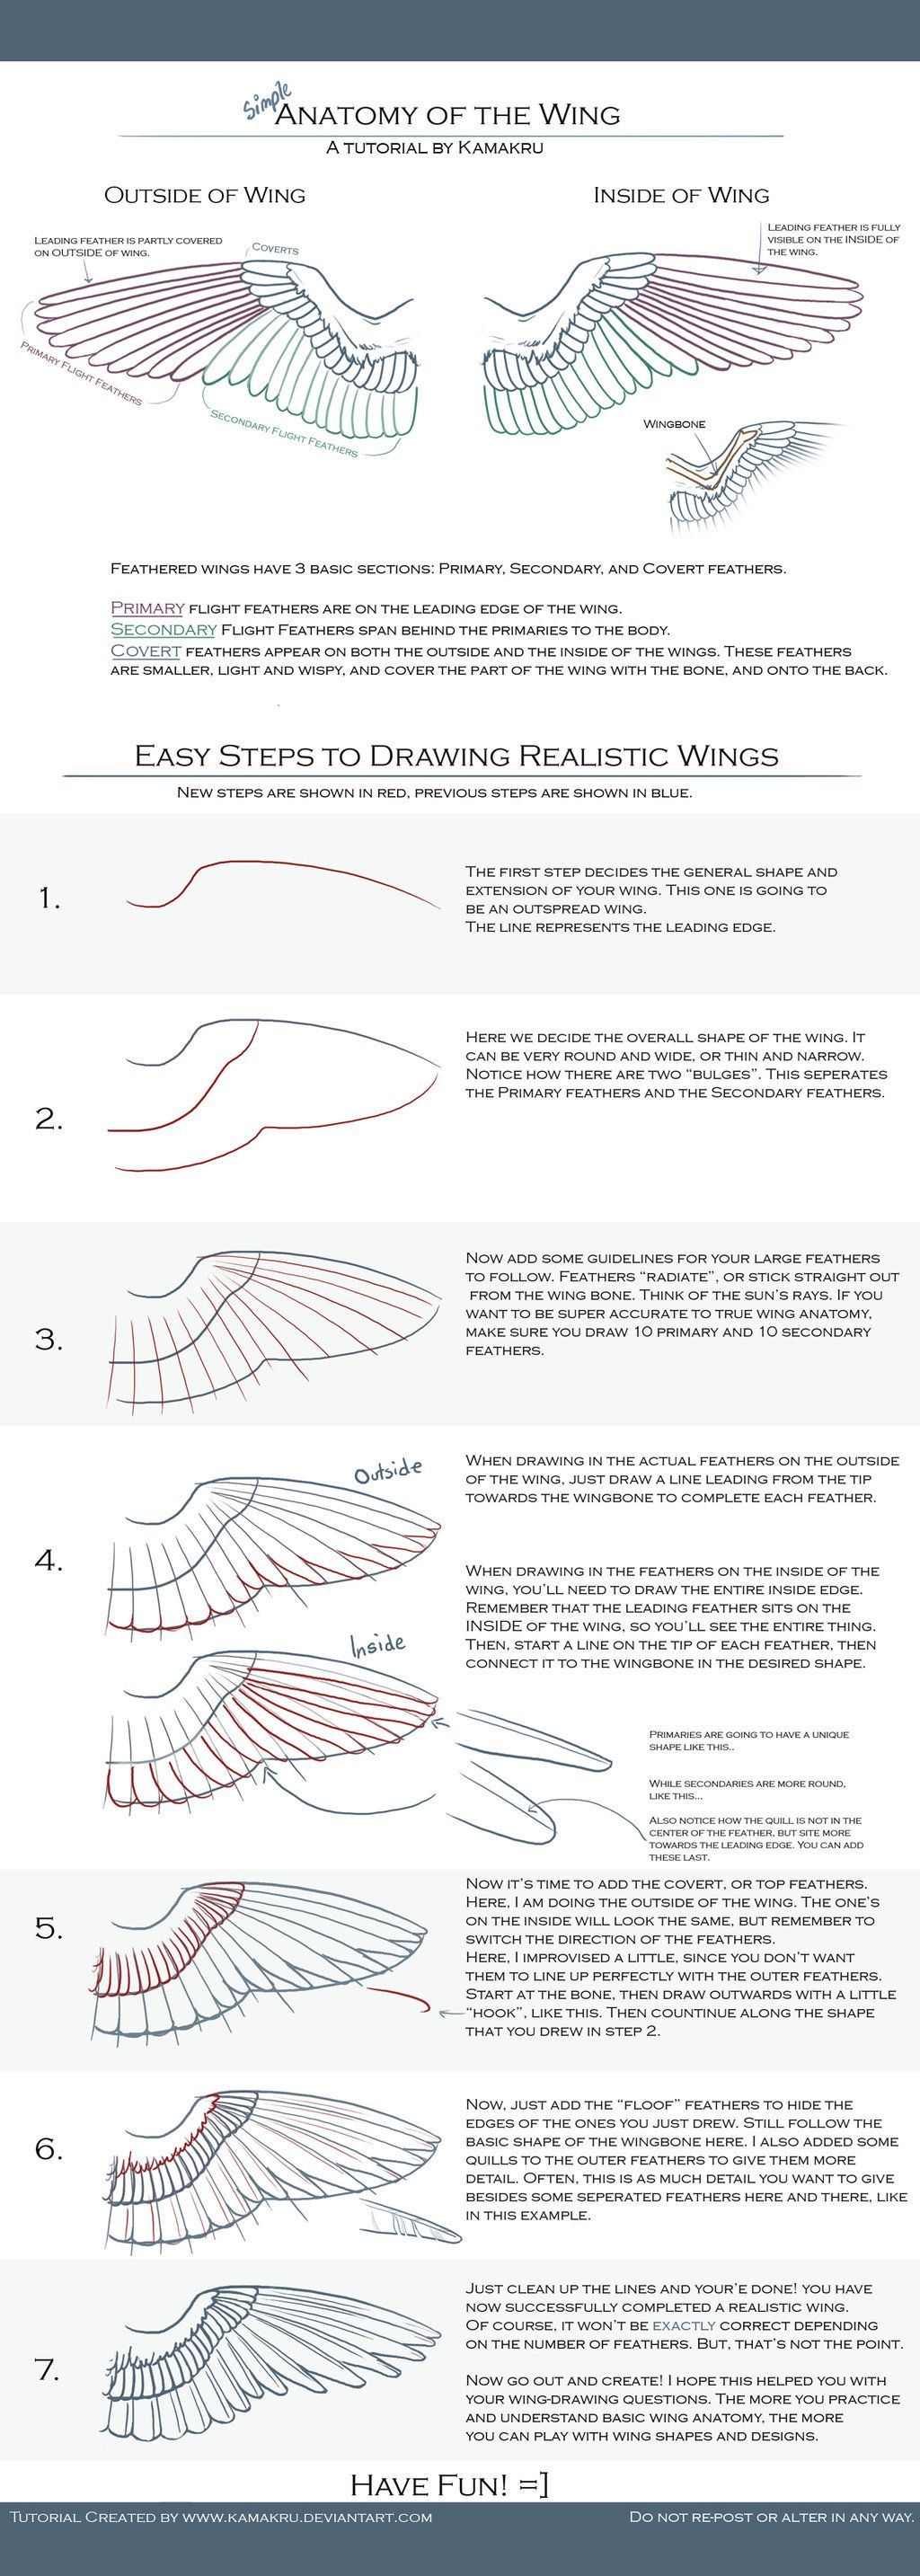 Anatomy of a realistic wing | How to draw_____ | Pinterest | Anatomy ...